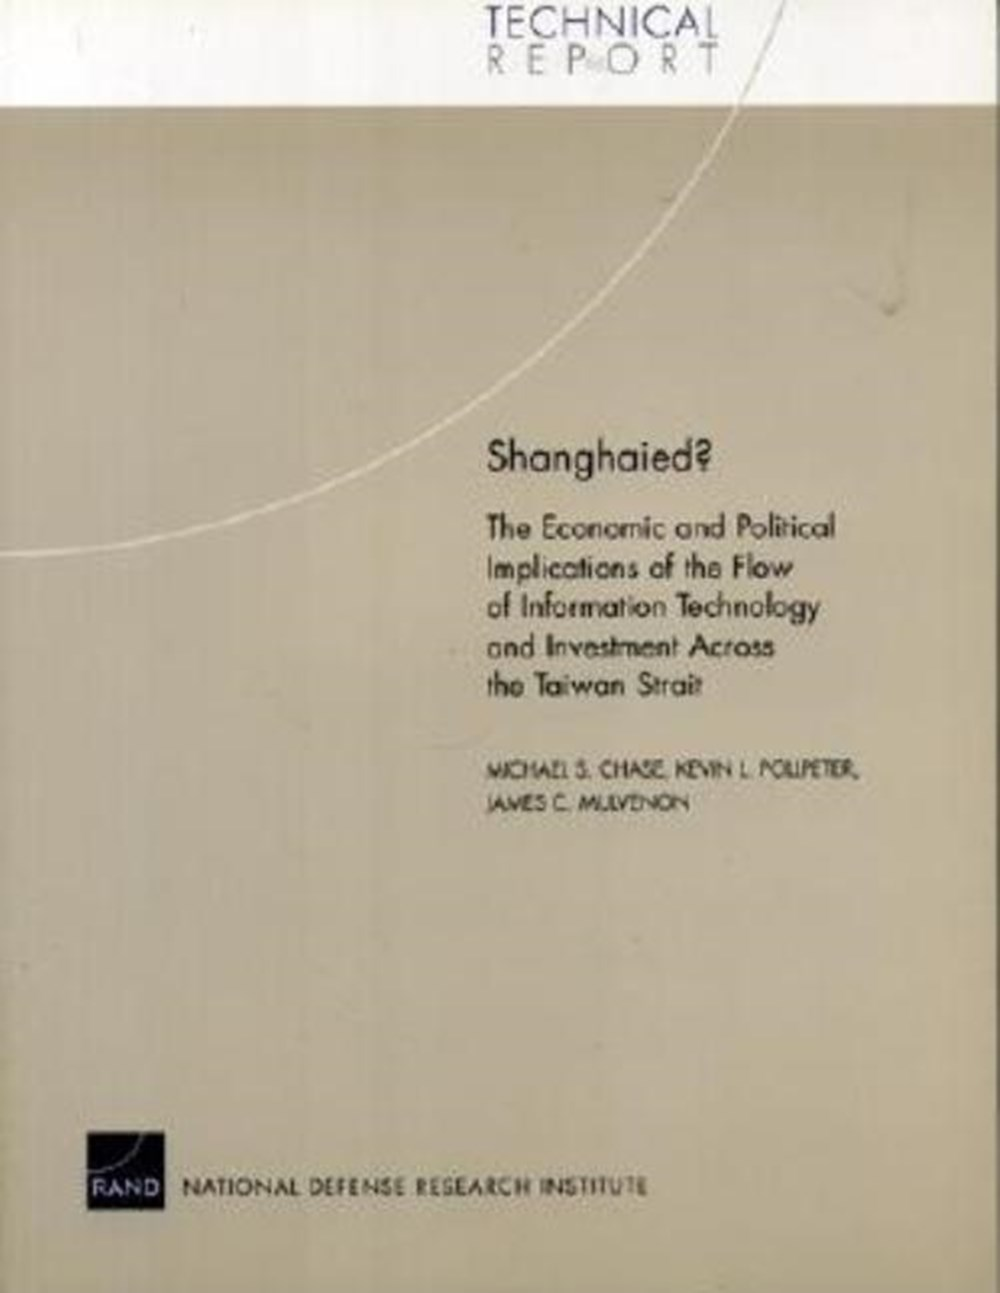 Shanghaied? The Economic and Political Implications of the Flow of Information Technology and Invest